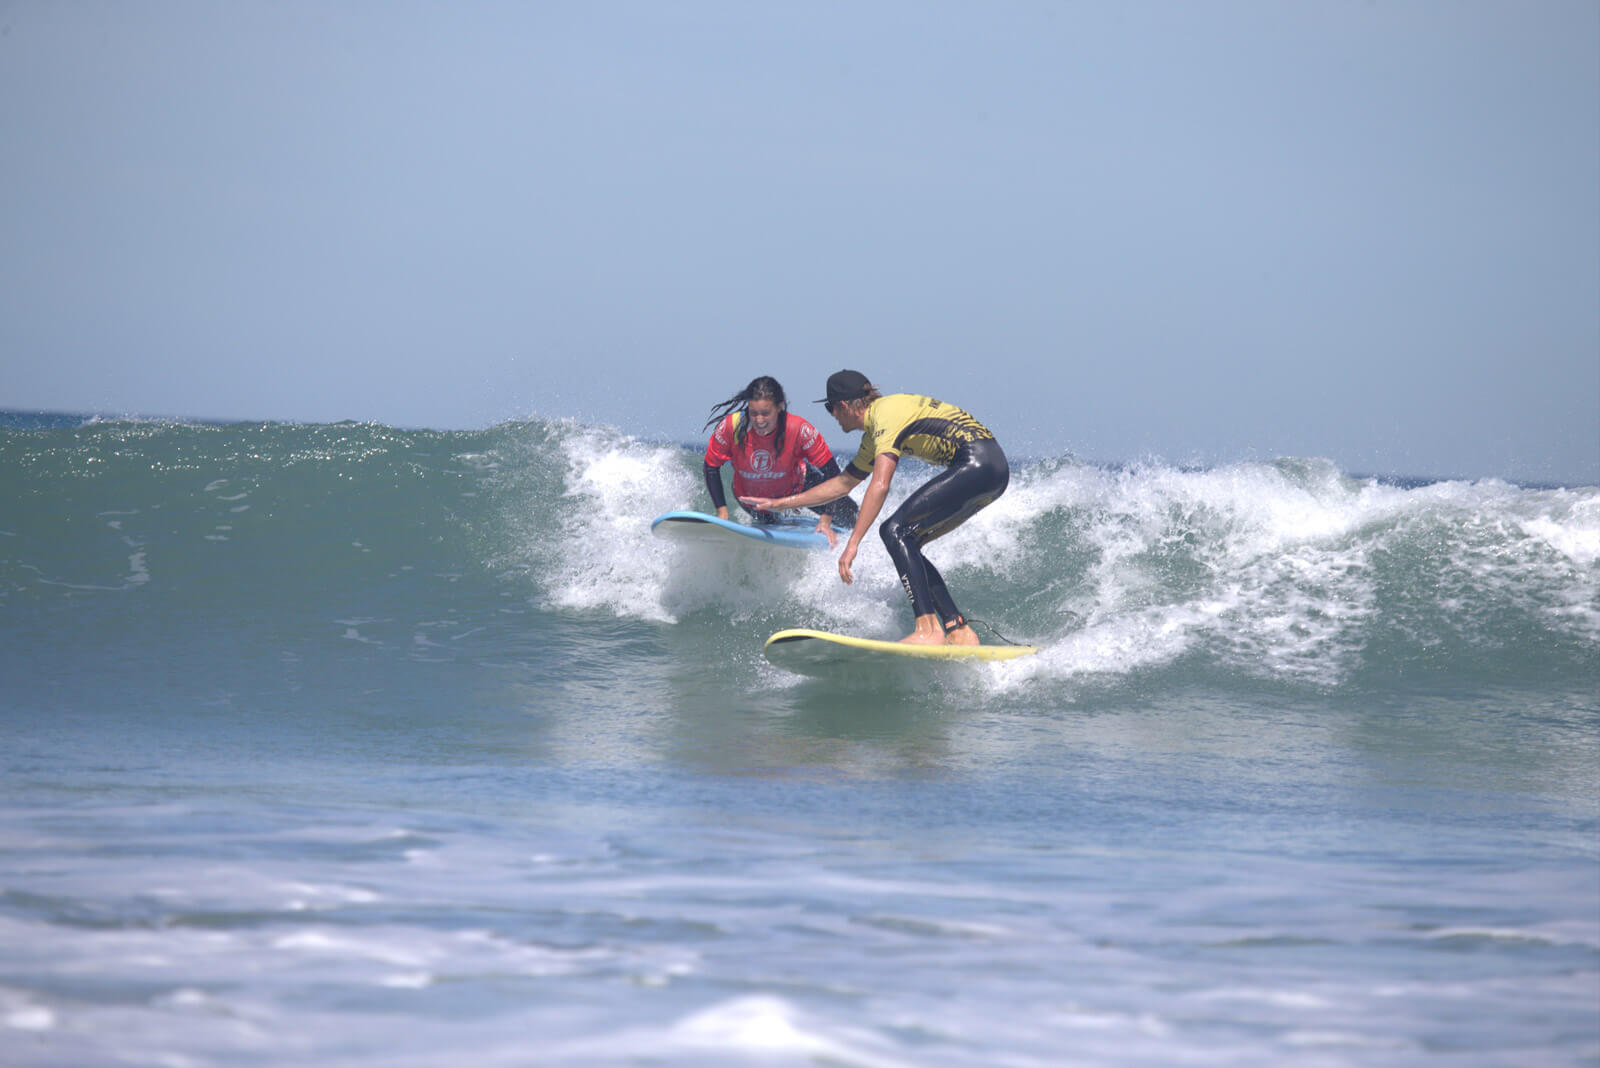 <!--:es-->Clases de Surf privadas en Lanzarote<!--:--><!--:en-->Private Surf Lessons in Lanzarote<!--:--> 1